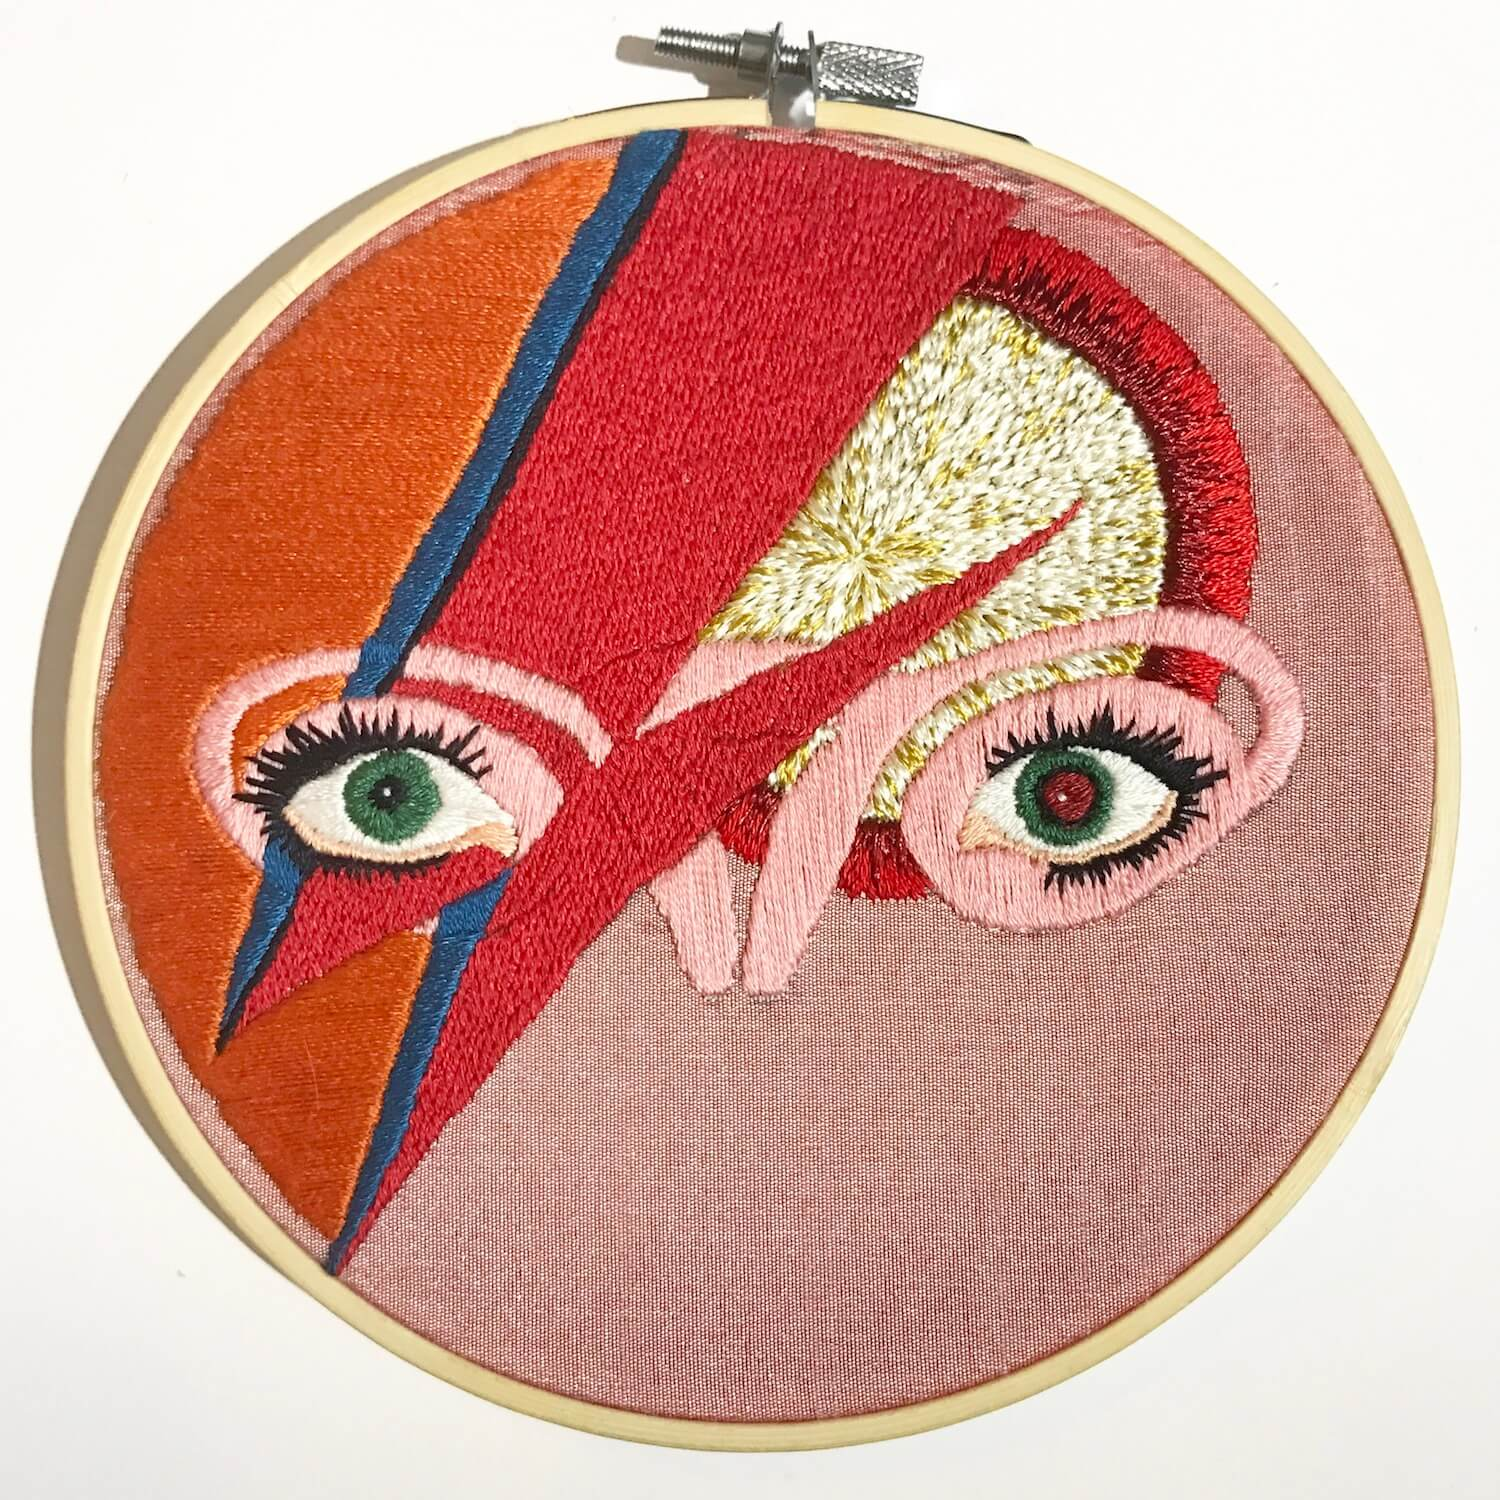 Ovaries embroidery with david bowie motif